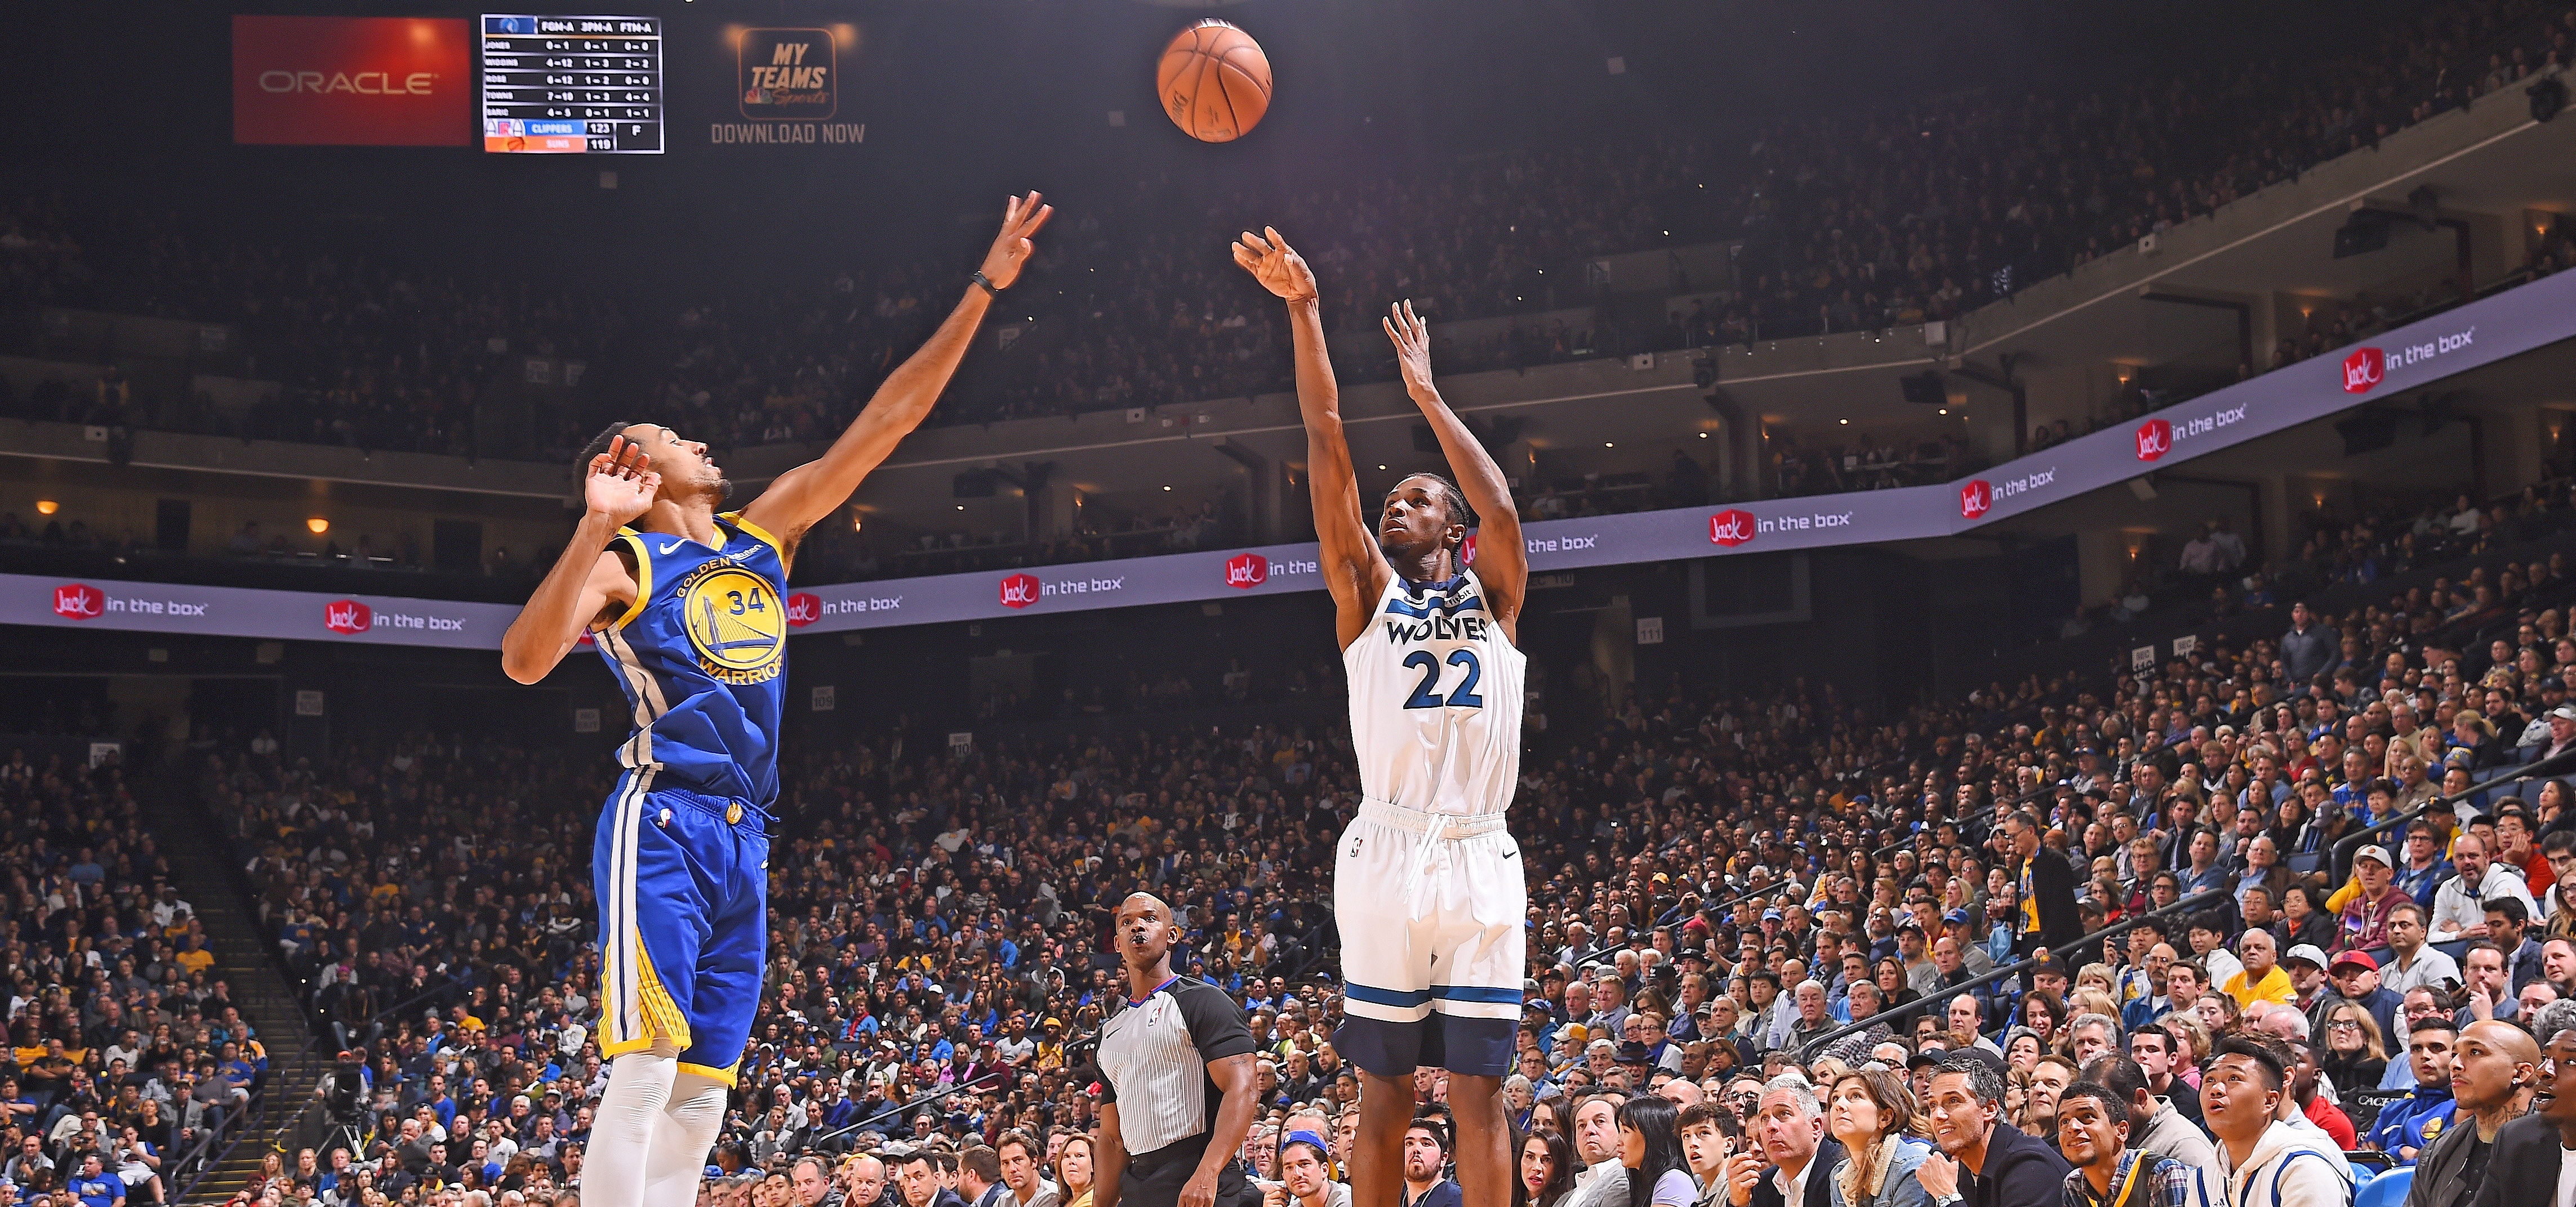 Wolves Can Get Back On Track In Final 2 Games Of West Coast Road Trip